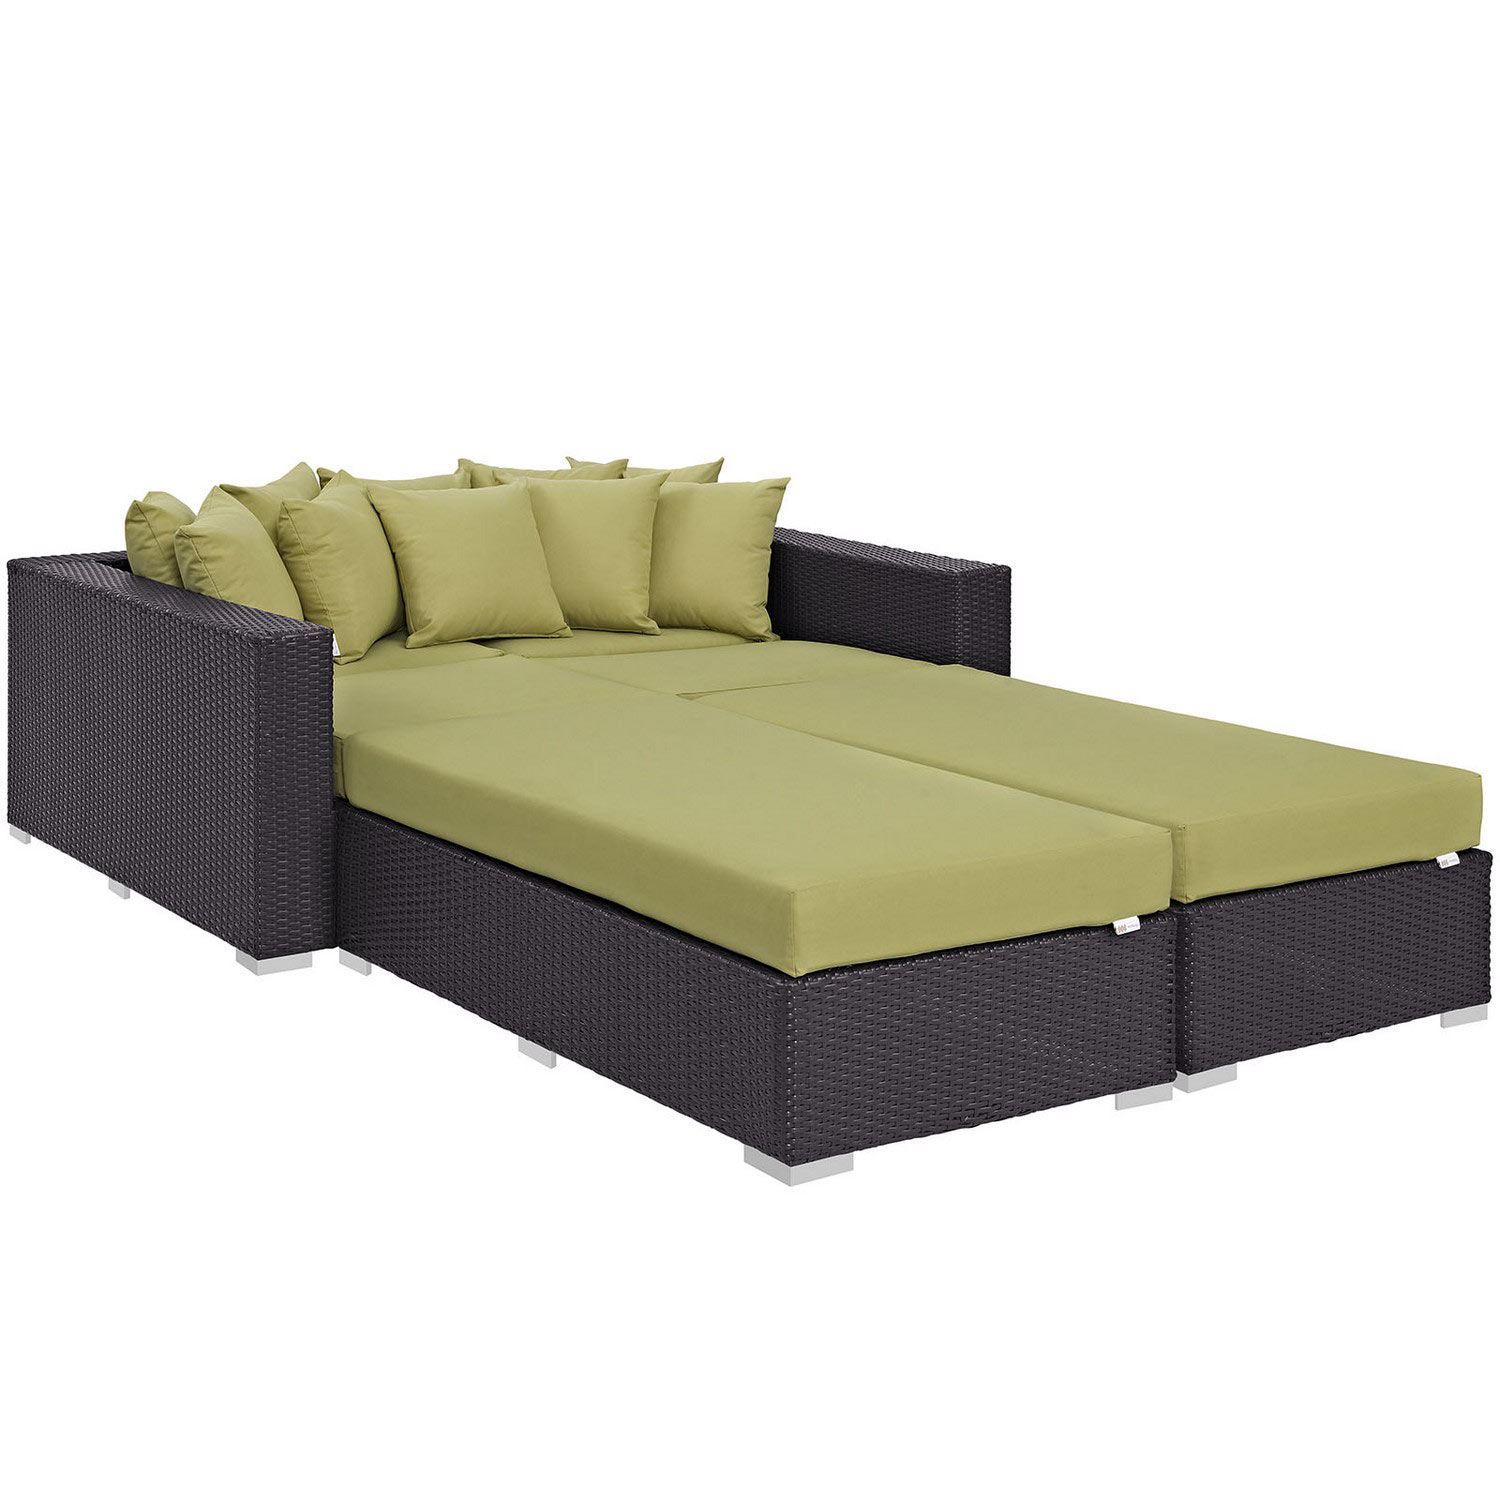 Modway Convene 4 Piece Outdoor Patio Daybed - Espresso Peridot